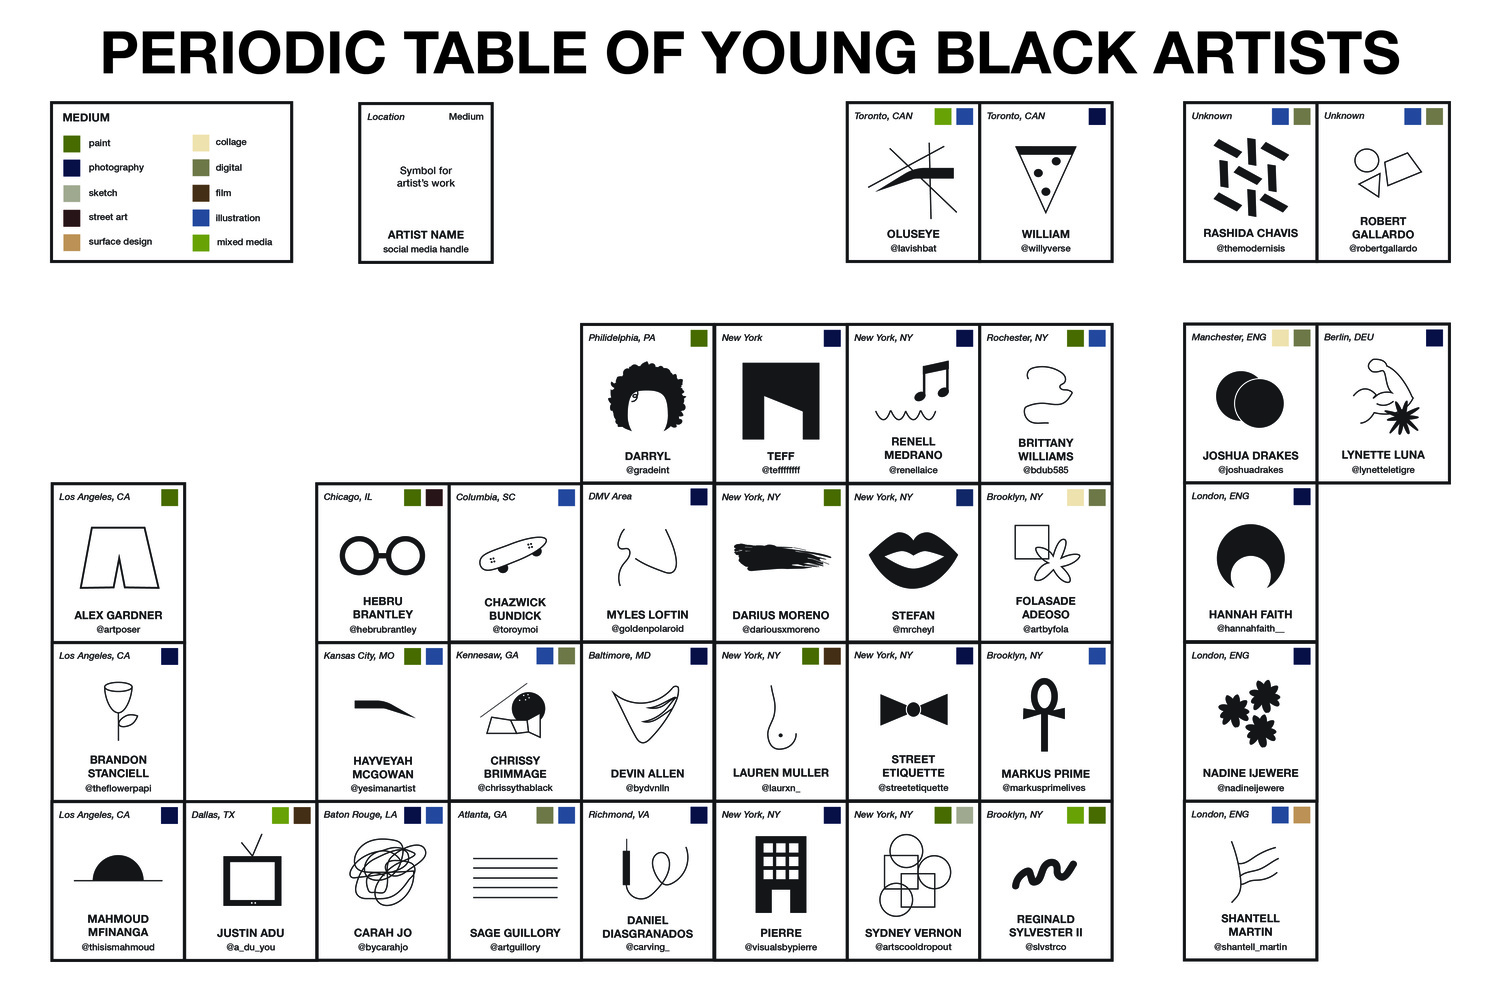 Periodic table of young black artists poster francine a thompson periodic table of young black artists poster gamestrikefo Gallery